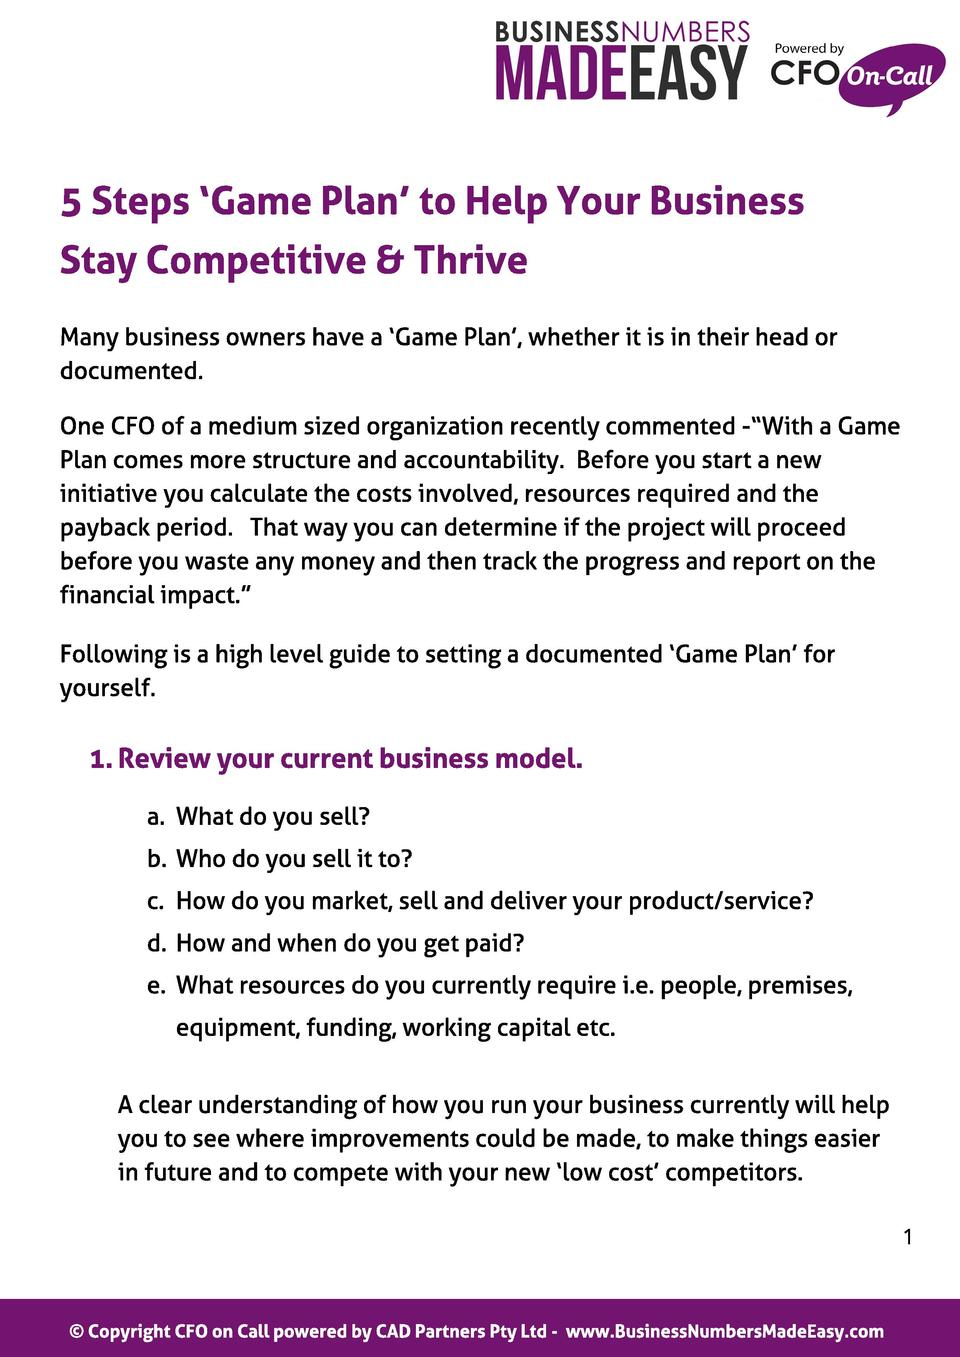 5 St eps  Game Pl an t o Hel p Your Business St ay Compet it ive   Thrive Many business owners have a  Game Plan , whether...